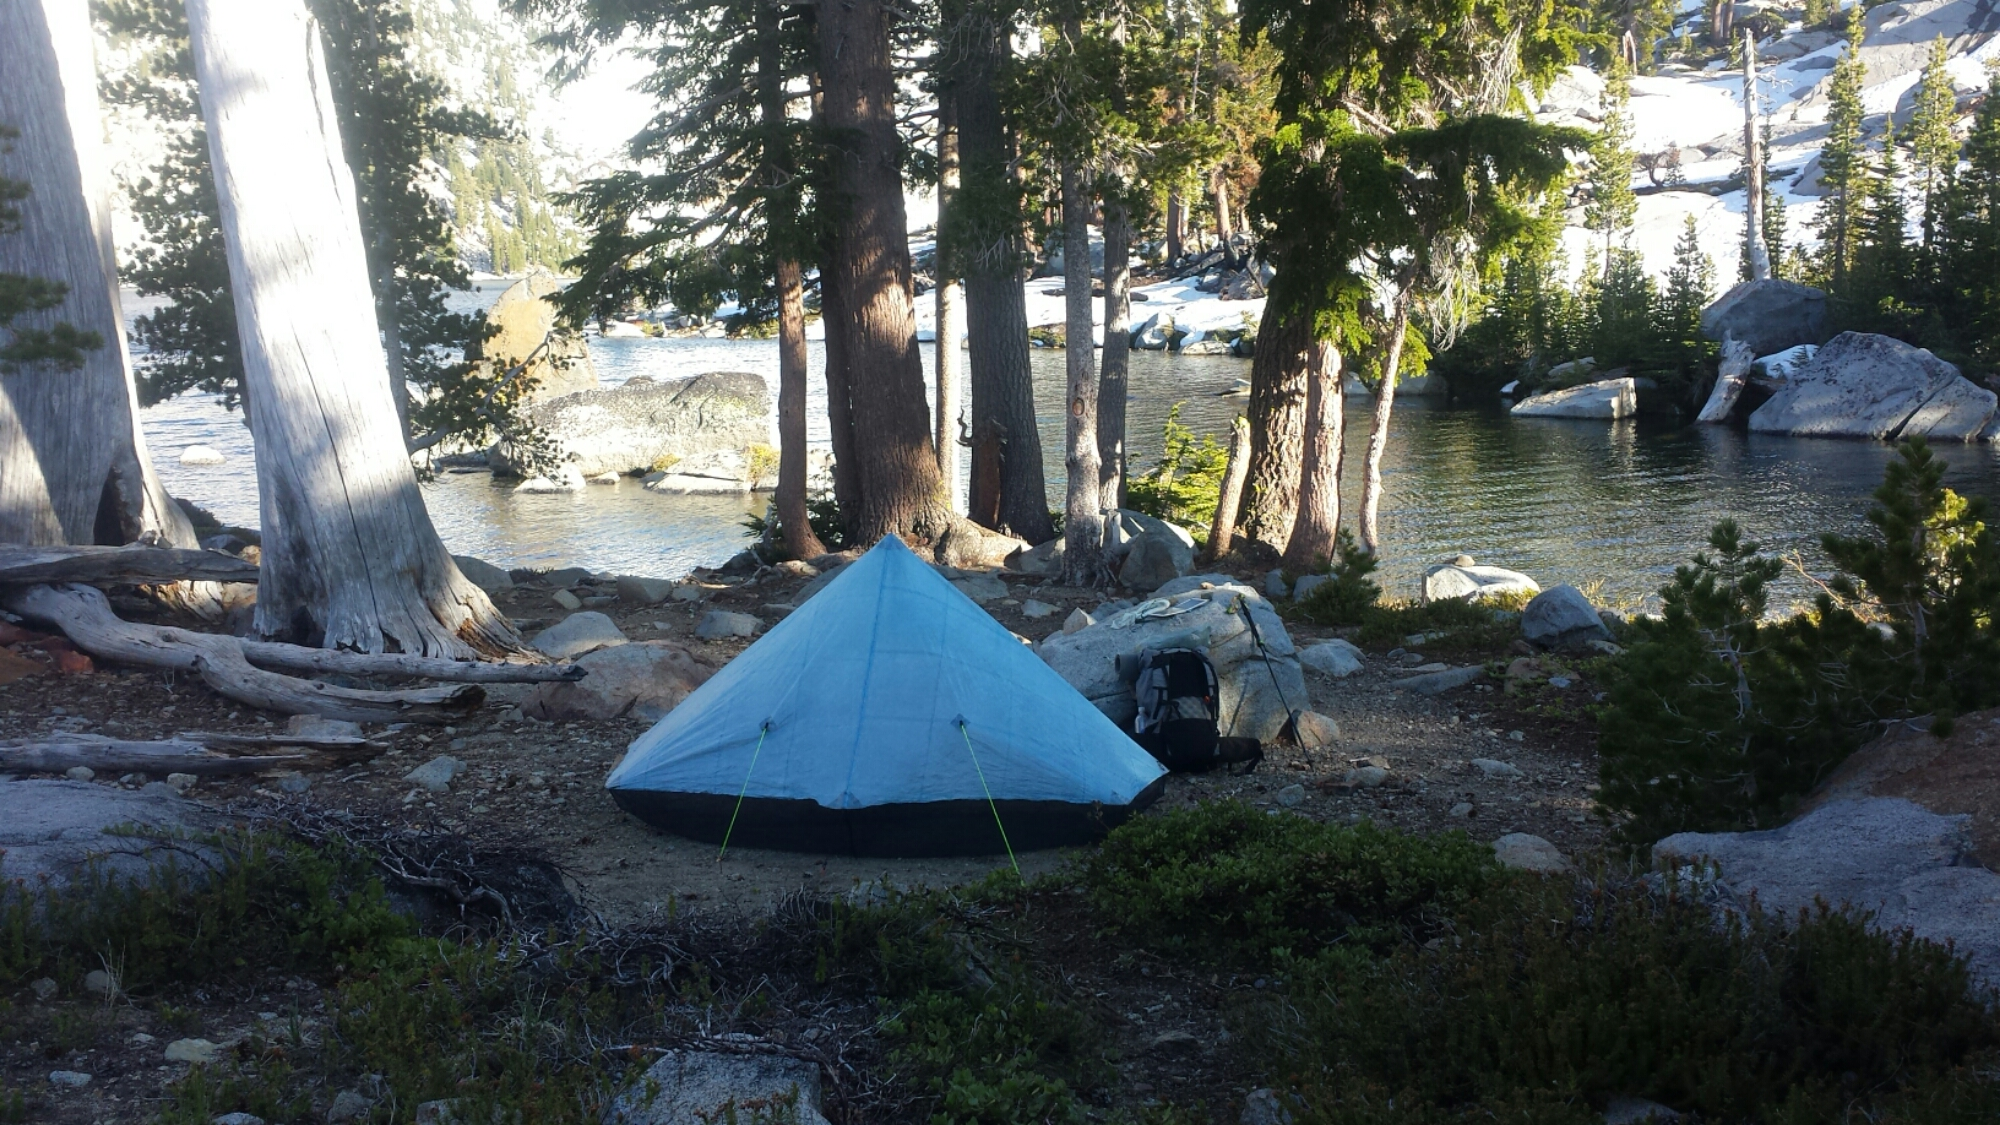 Camping at Dick's Lake